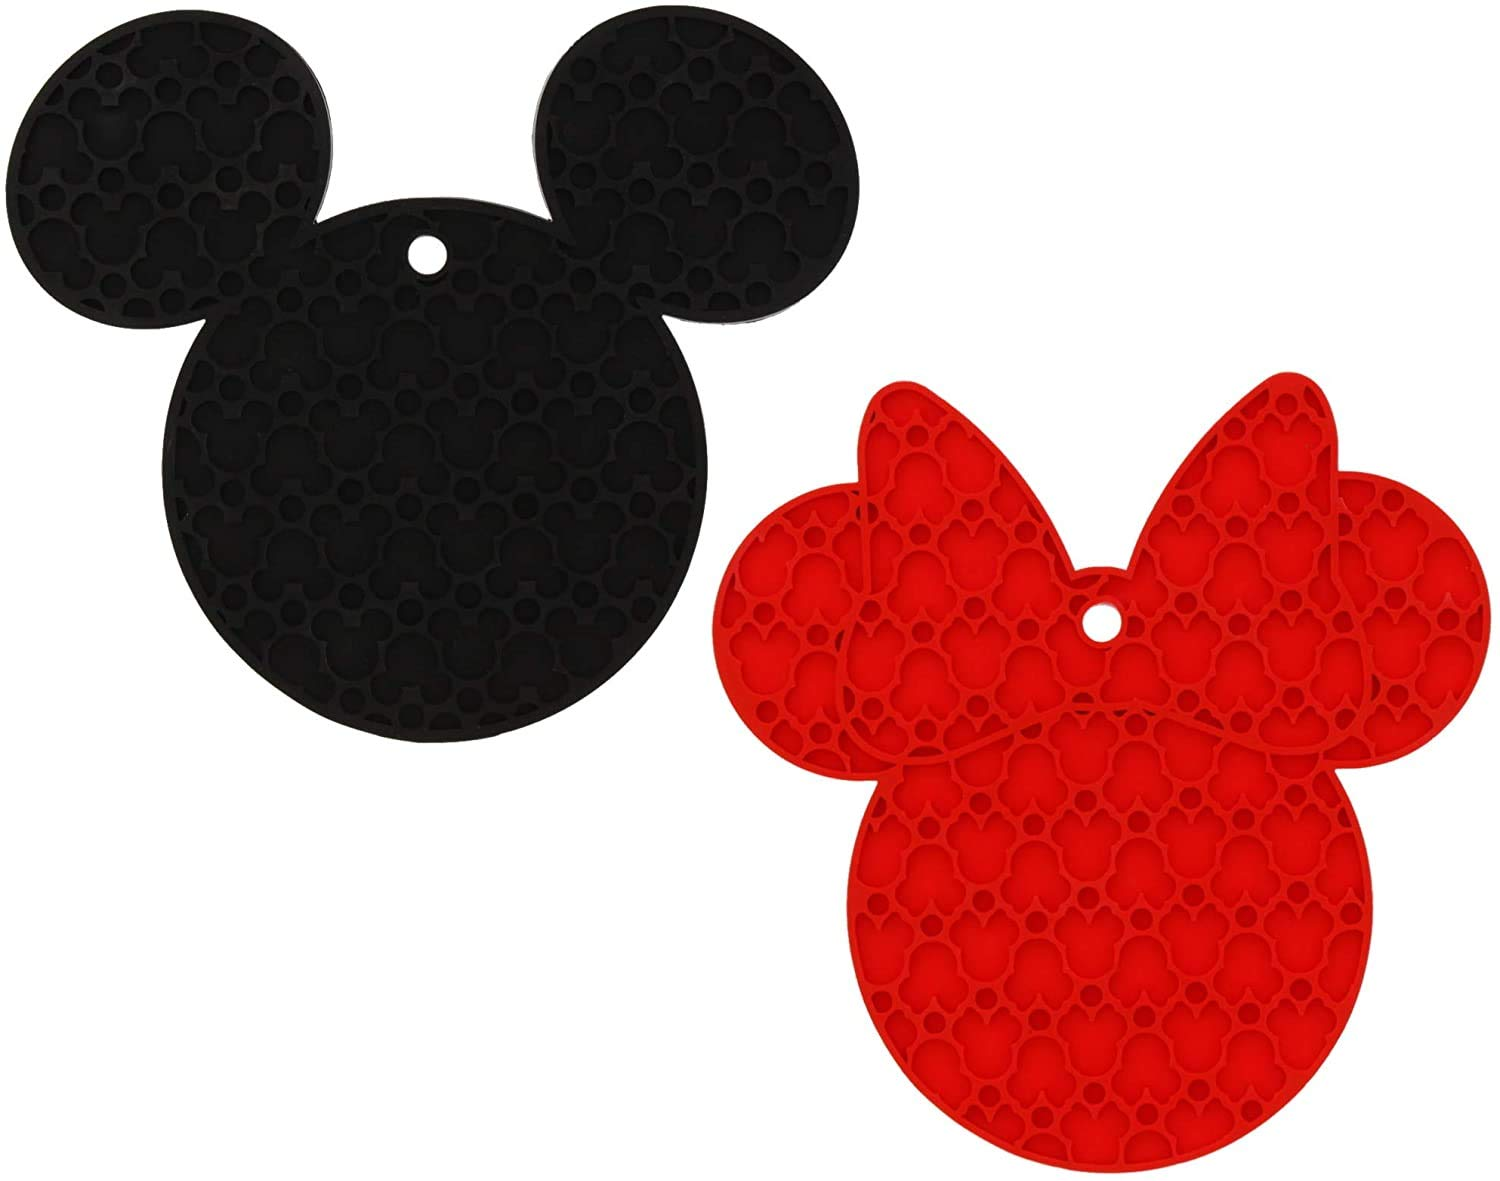 Disney Mickey and Minnie Mouse 100% Silicone Trivets, 2pk - Multipurpose Flexible Kitchen Tools that Serve as Pot Holders, Spoon Rest, Jar Opener, or Heat Resistant Hot Pads up to 500 degrees F